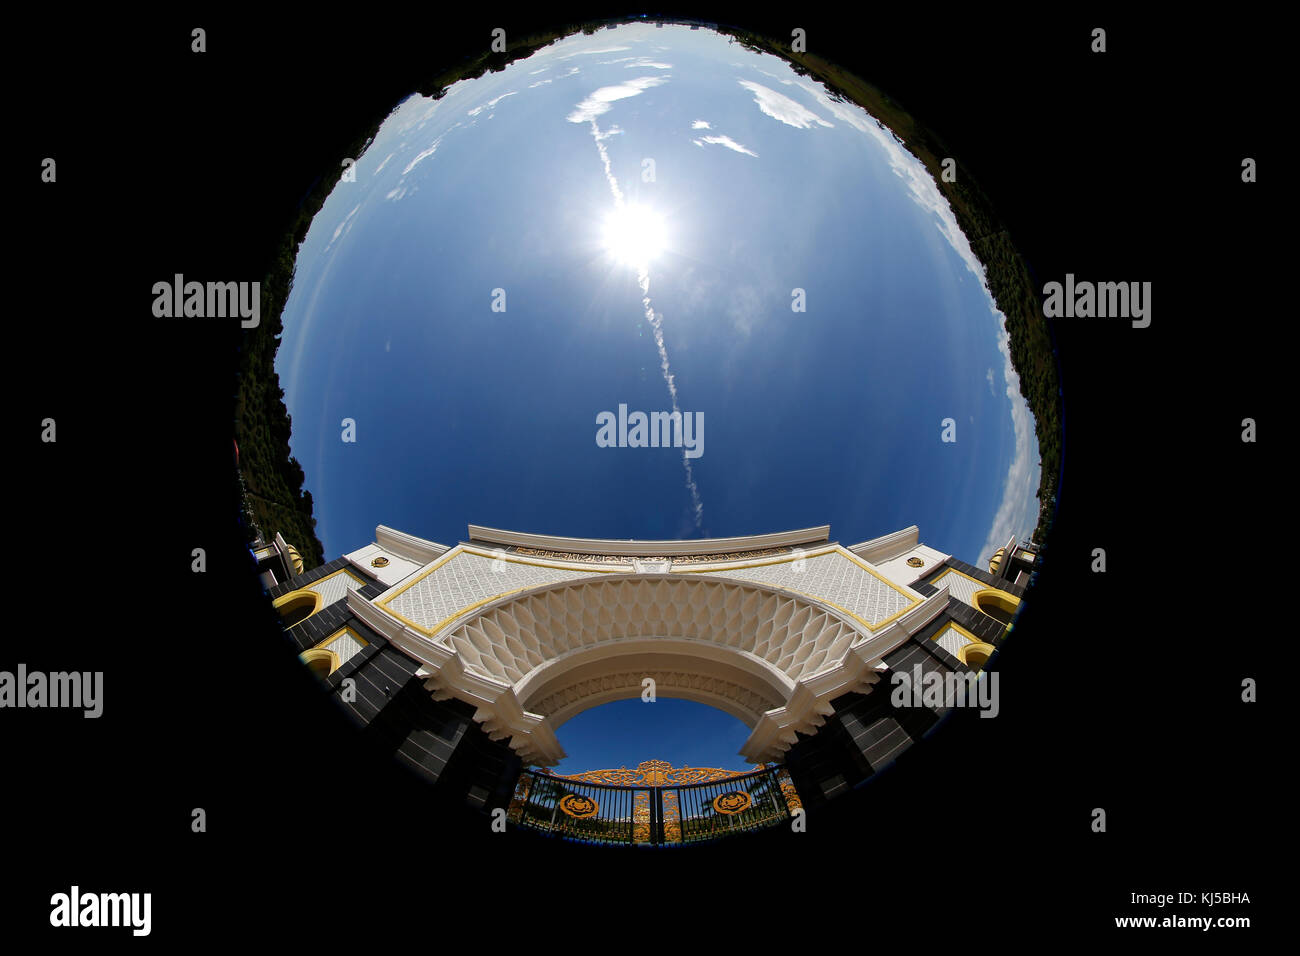 A fisheye view of the front entrance of the Malaysia King's Palace in Kuala Lumpur, February 12, 2017. - Stock Image